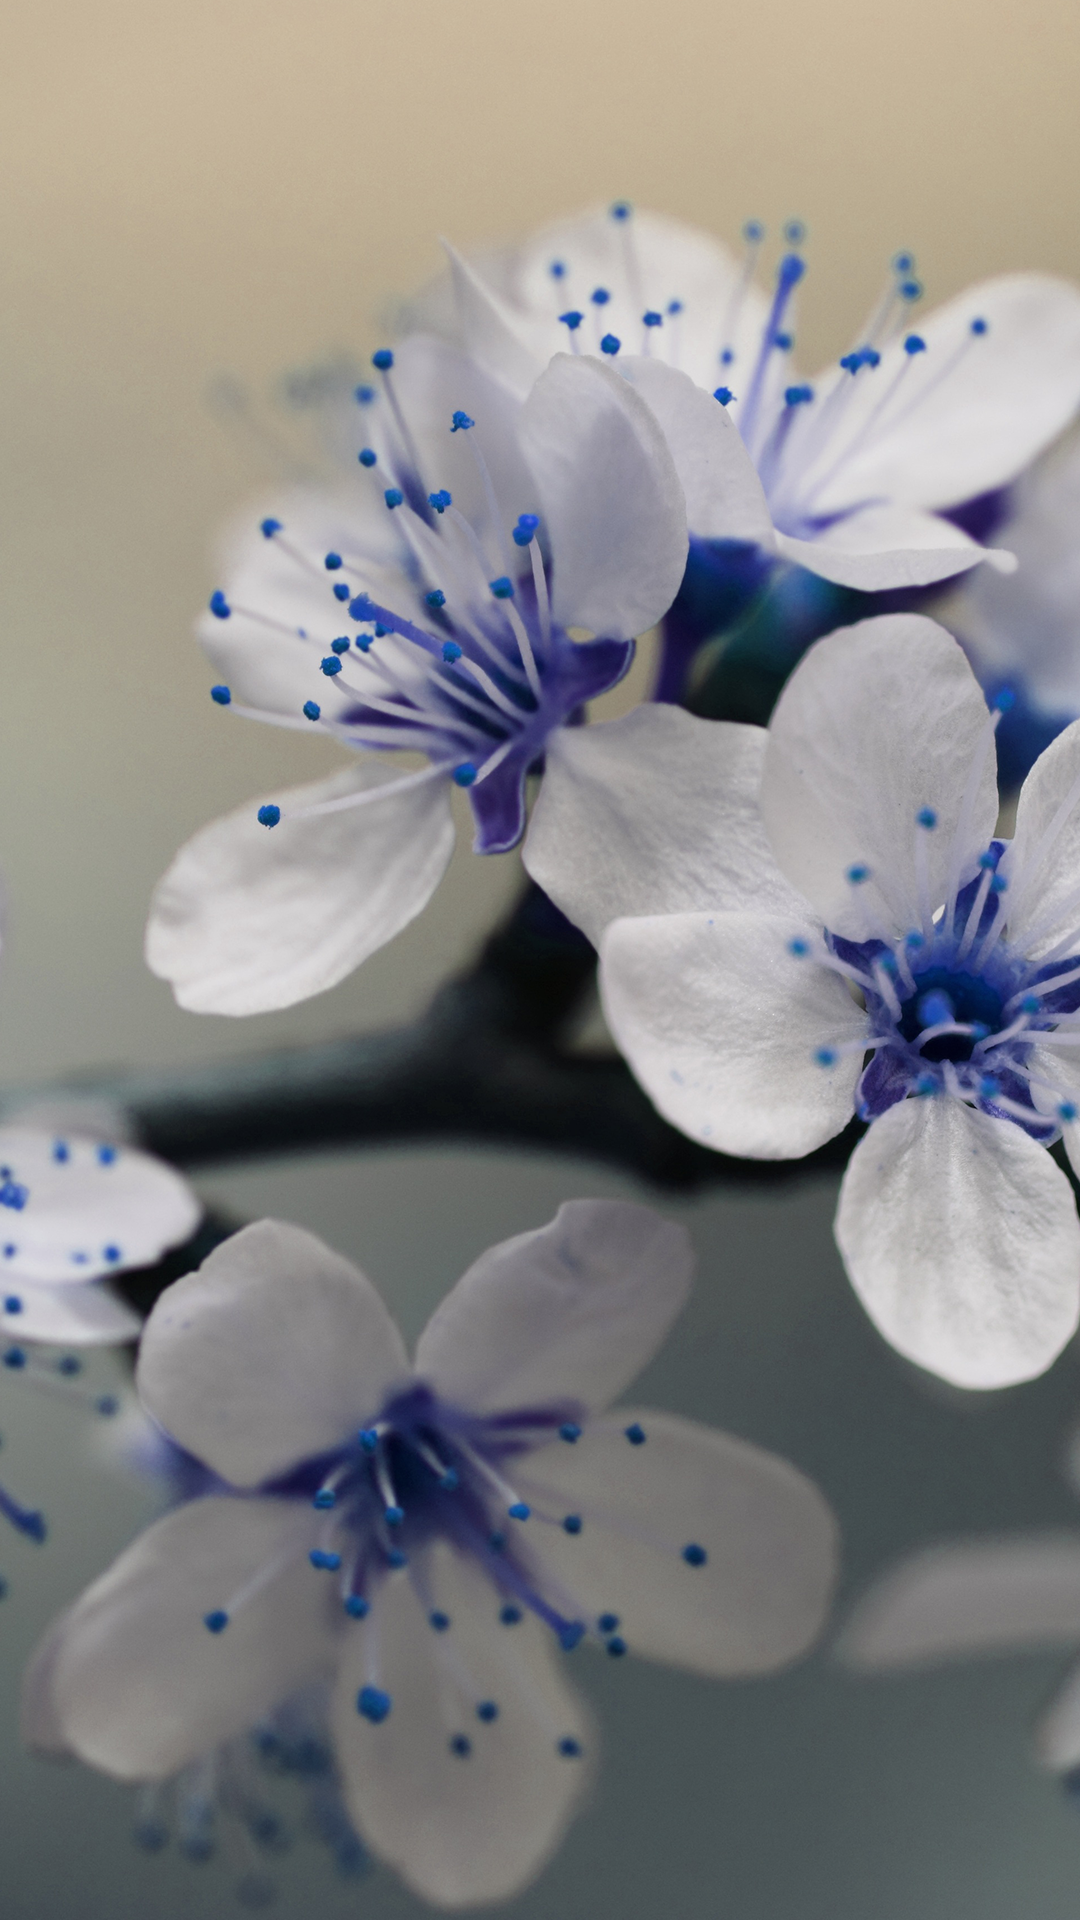 download our hd beautiful blue flowers wallpaper for android phones